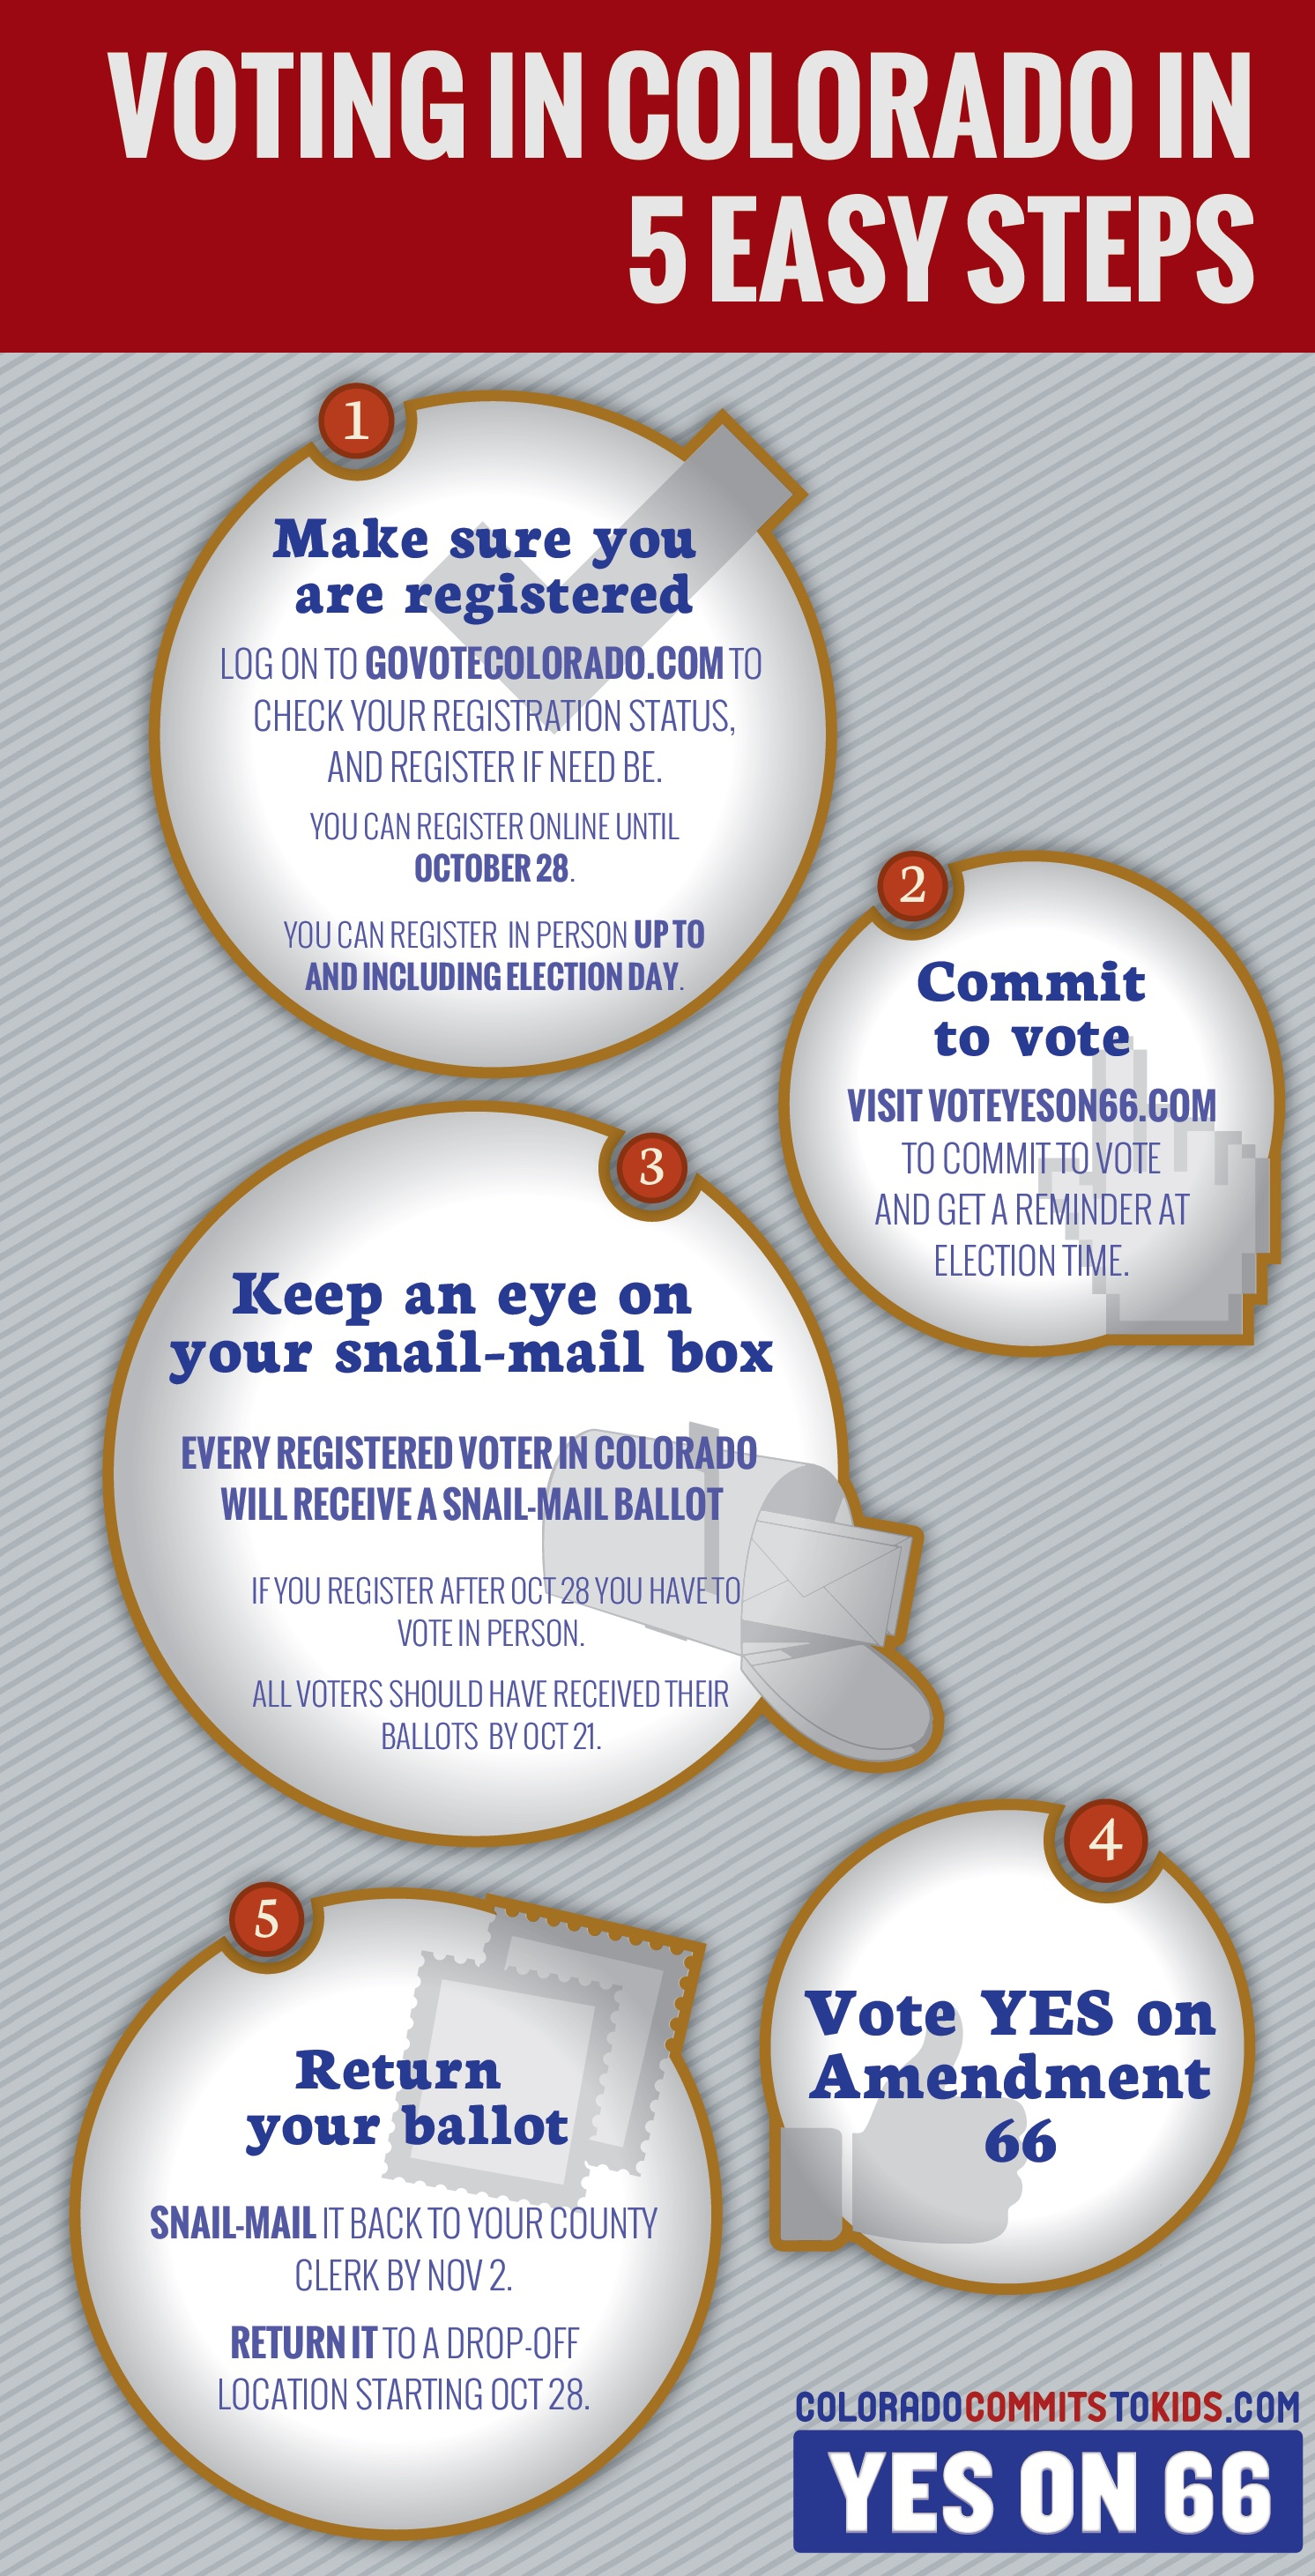 "Amendment 66 ""Voting in Colorado in 5 Easy Steps"" infographic"